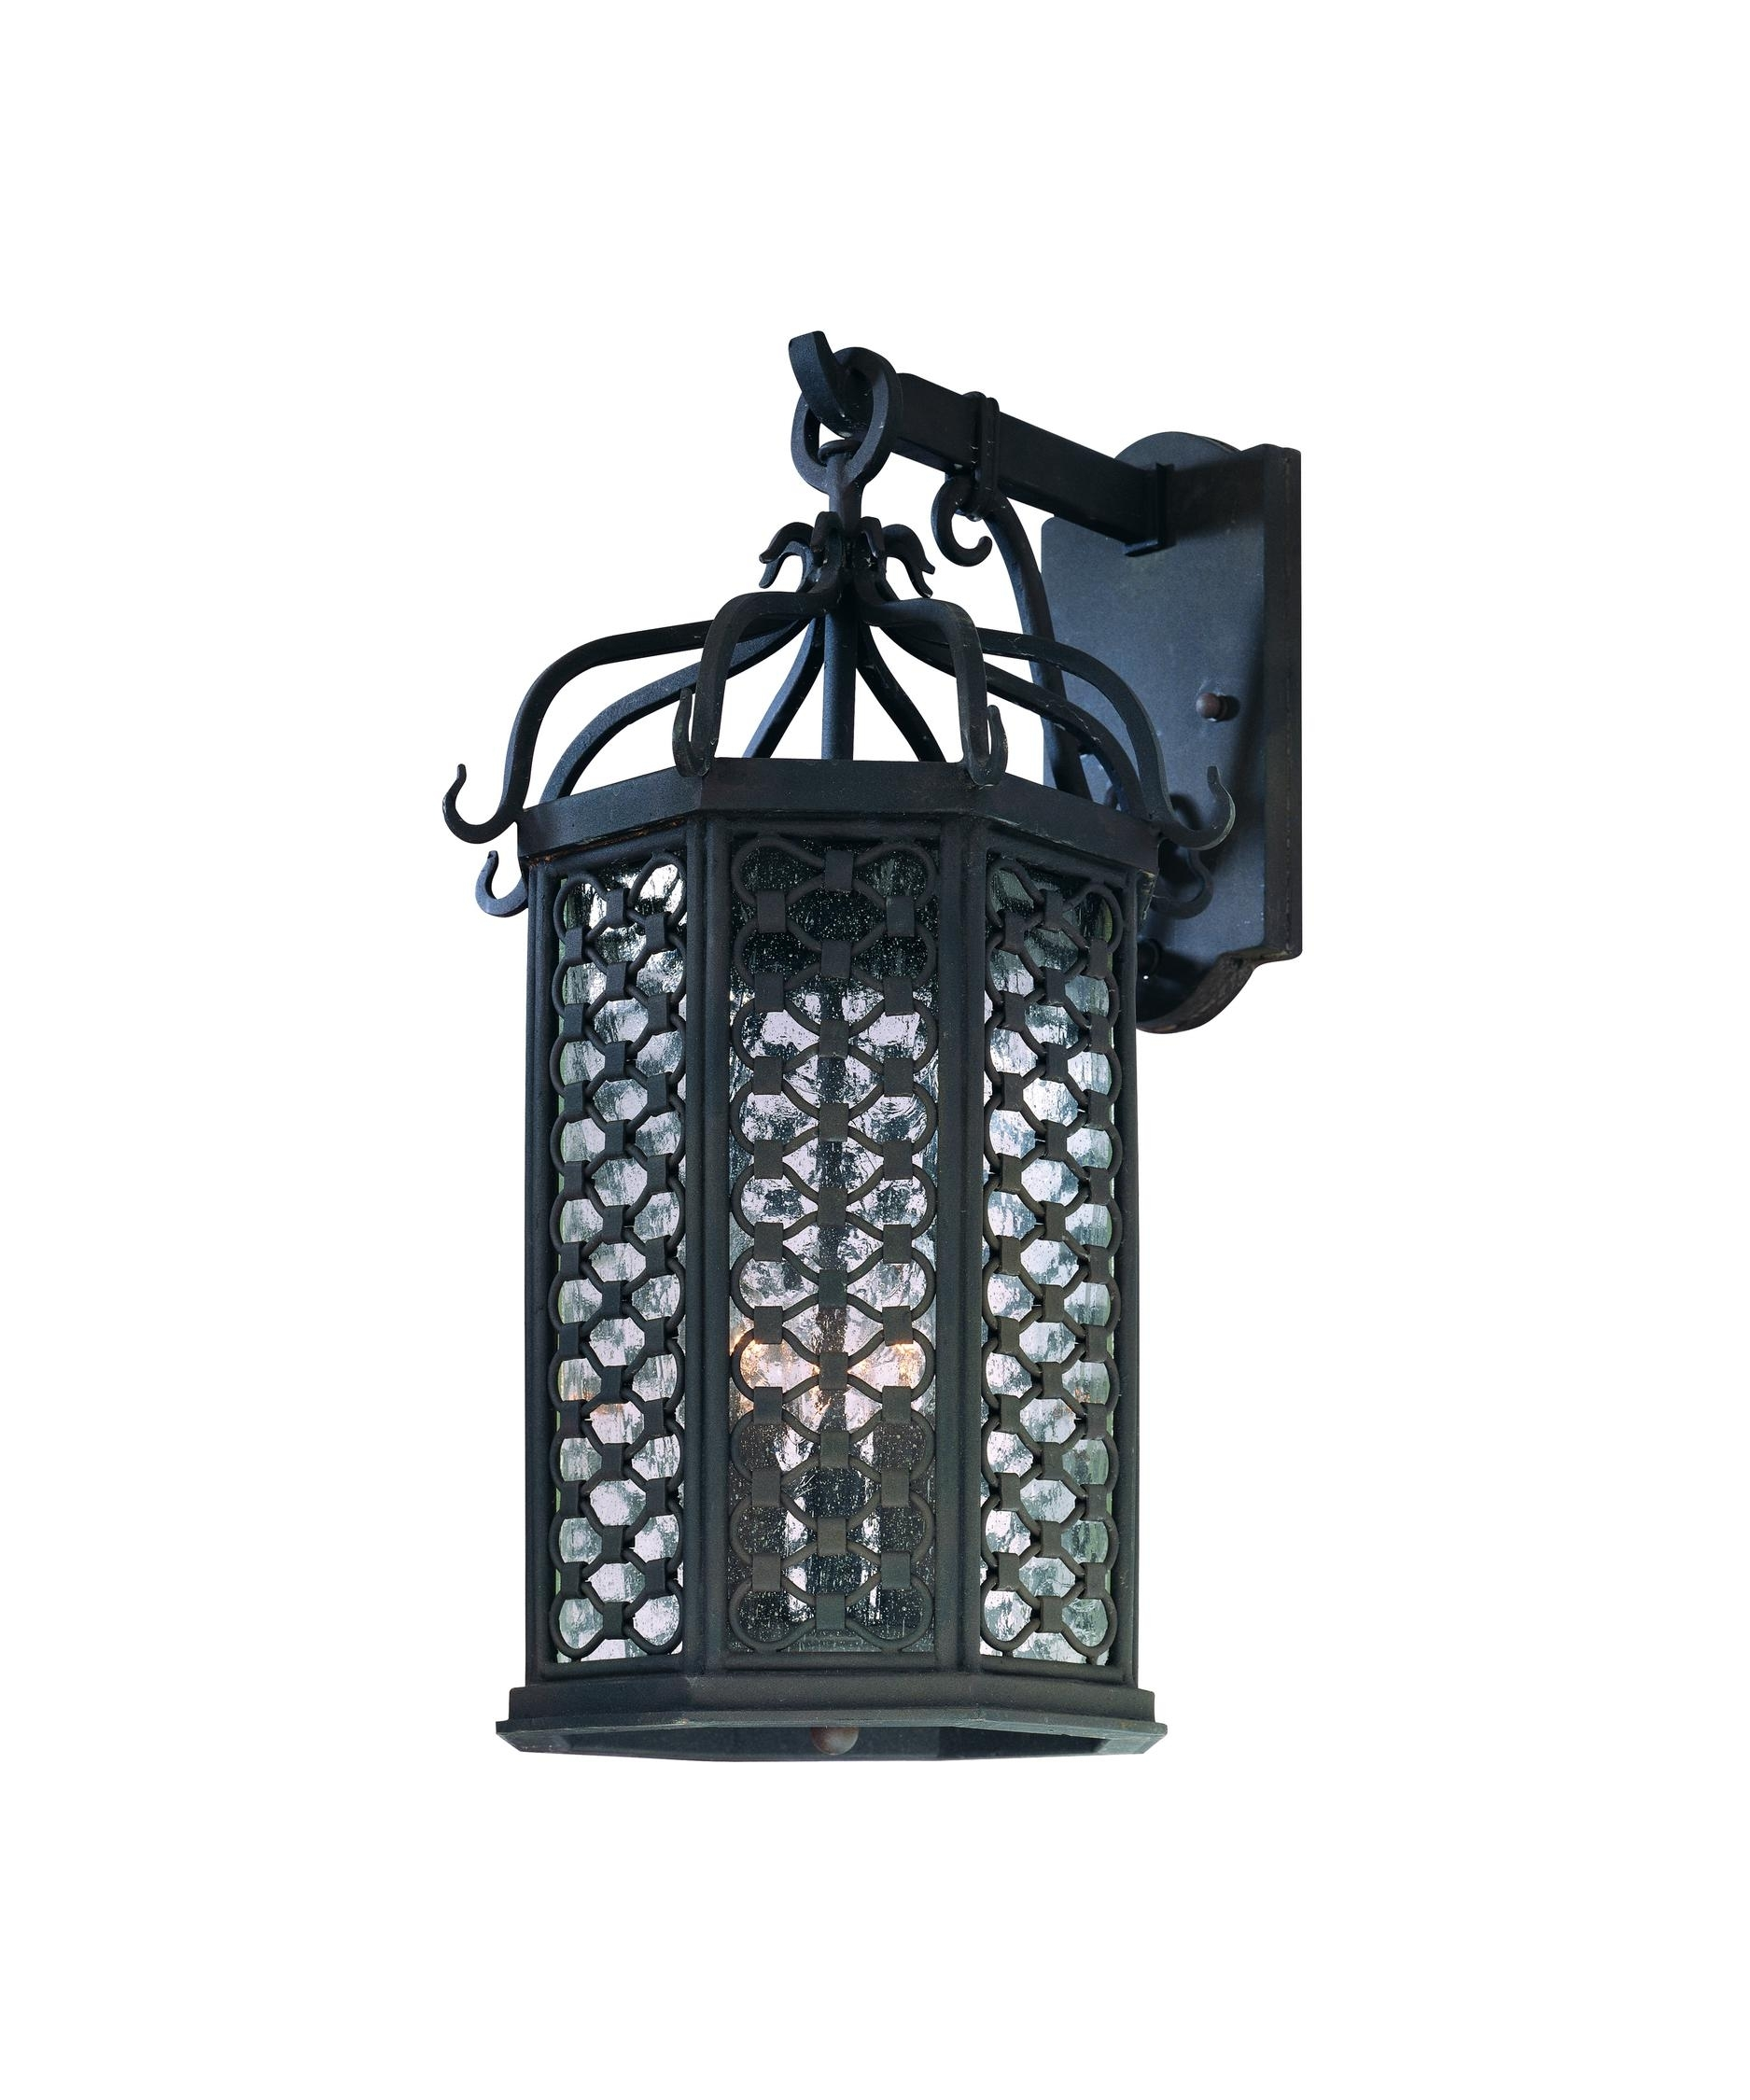 Troy Lighting B2373 Los Olivos 11 Inch Wide 3 Light Outdoor Wall Intended For Outdoor Hanging Wall Lanterns (View 15 of 15)